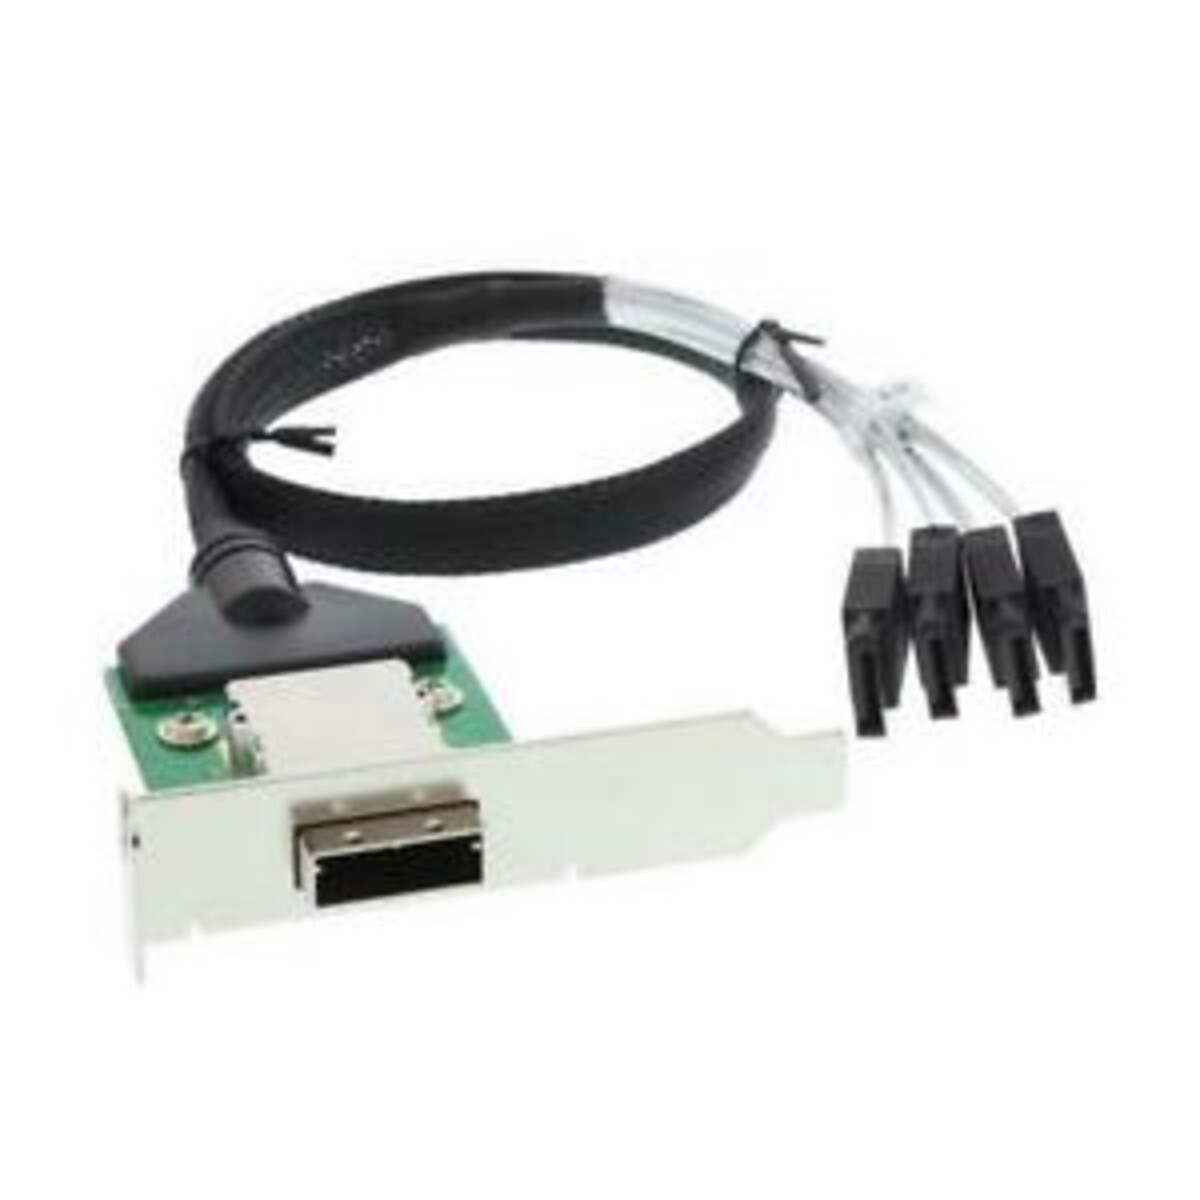 4043718209040-inline-adattatore-sas-su-staffa-pci-low-profile-da-26-pin-mini-sas-sff-8088-es